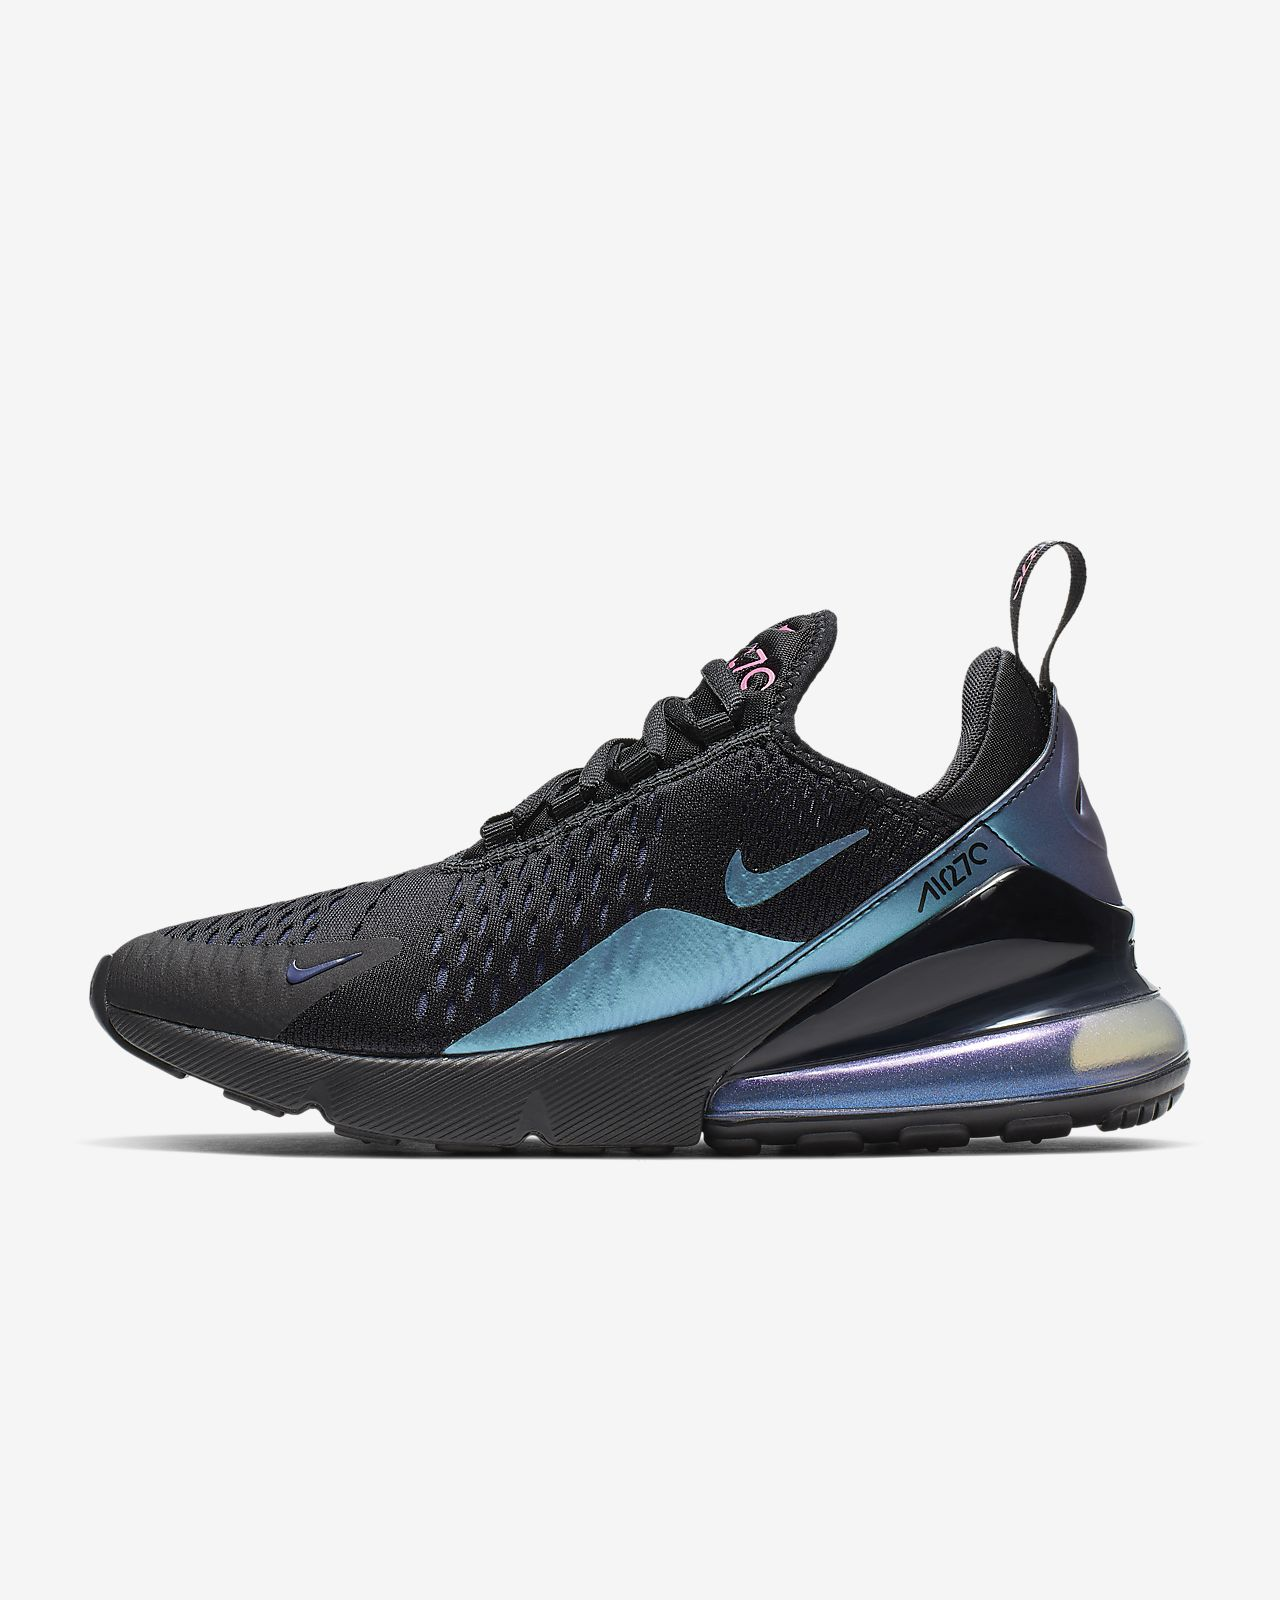 fa21263eae3 Nike Air Max 270 Women s Shoe. Nike.com GB